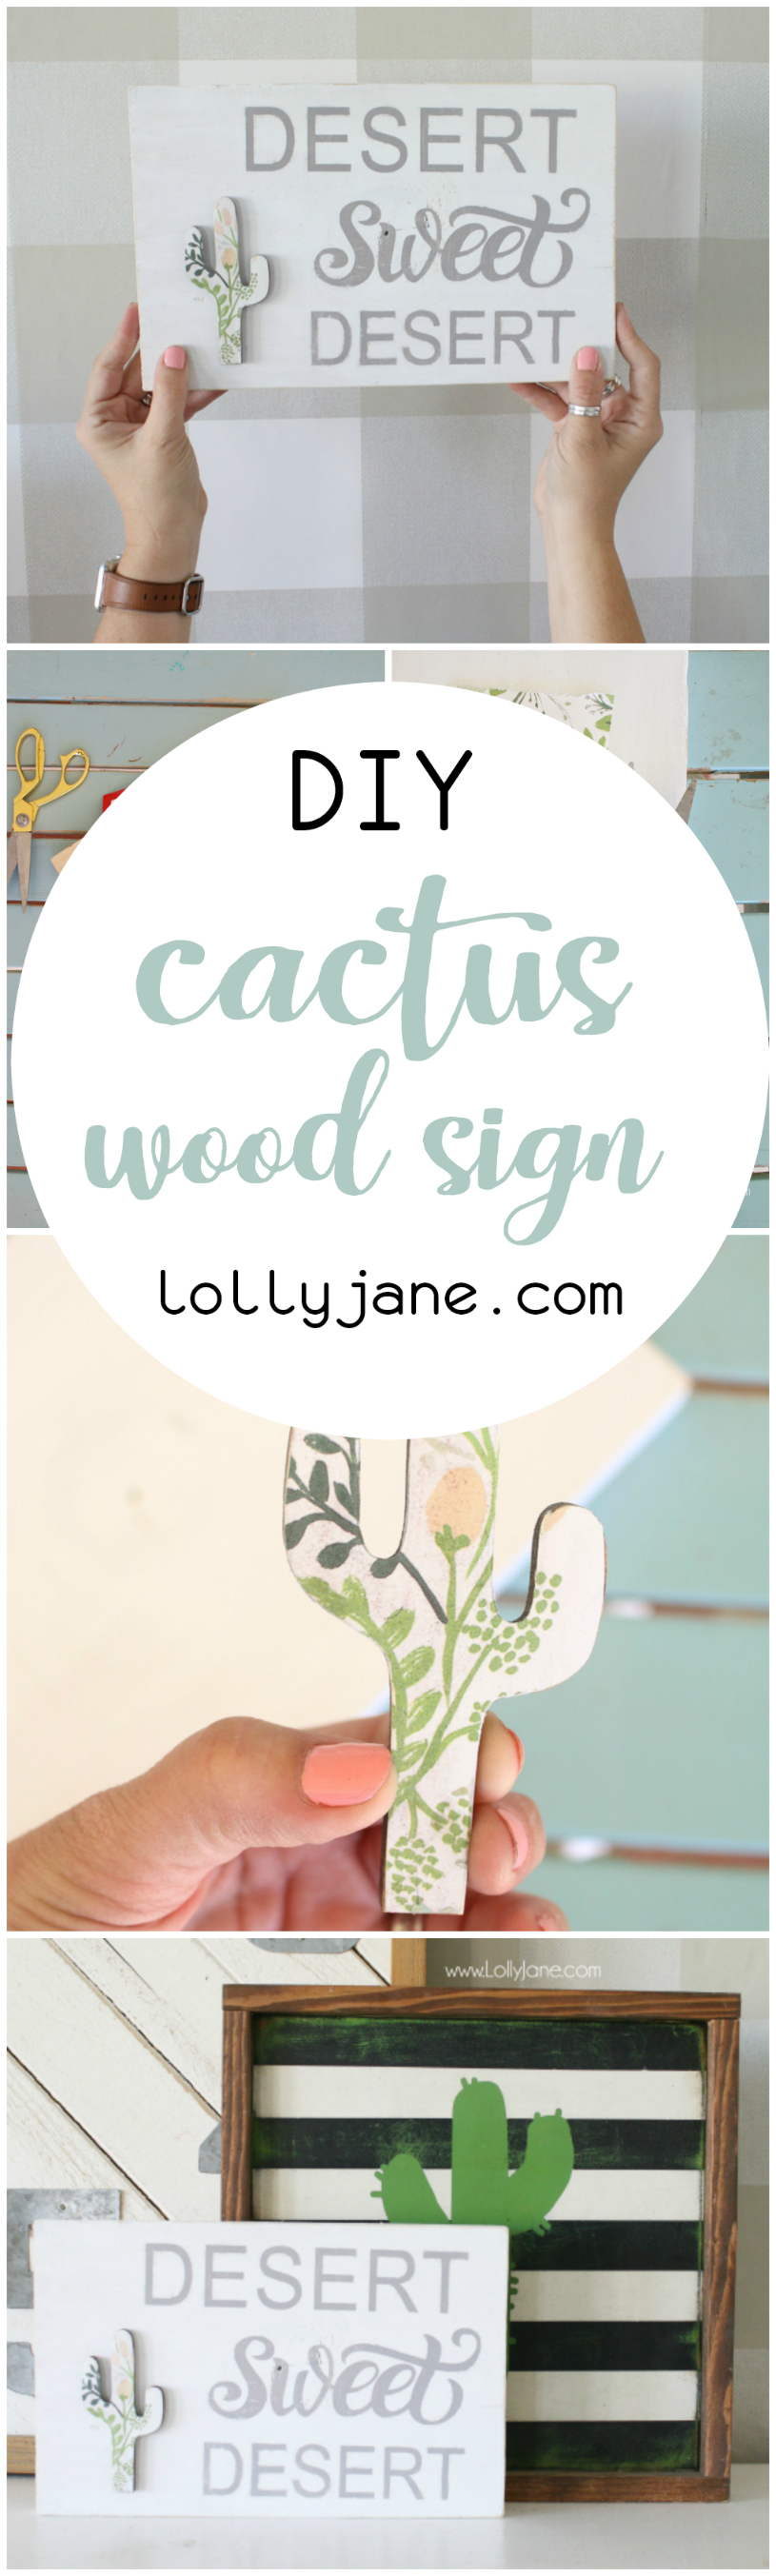 Uhm, LOVING this cute floral cactus wood sign!! Such a cute Arizona home sweet home twist with the western desert sweet desert! Love all of Lolly Jane's signs! Cute wood sign tutorial that is super easy to make!